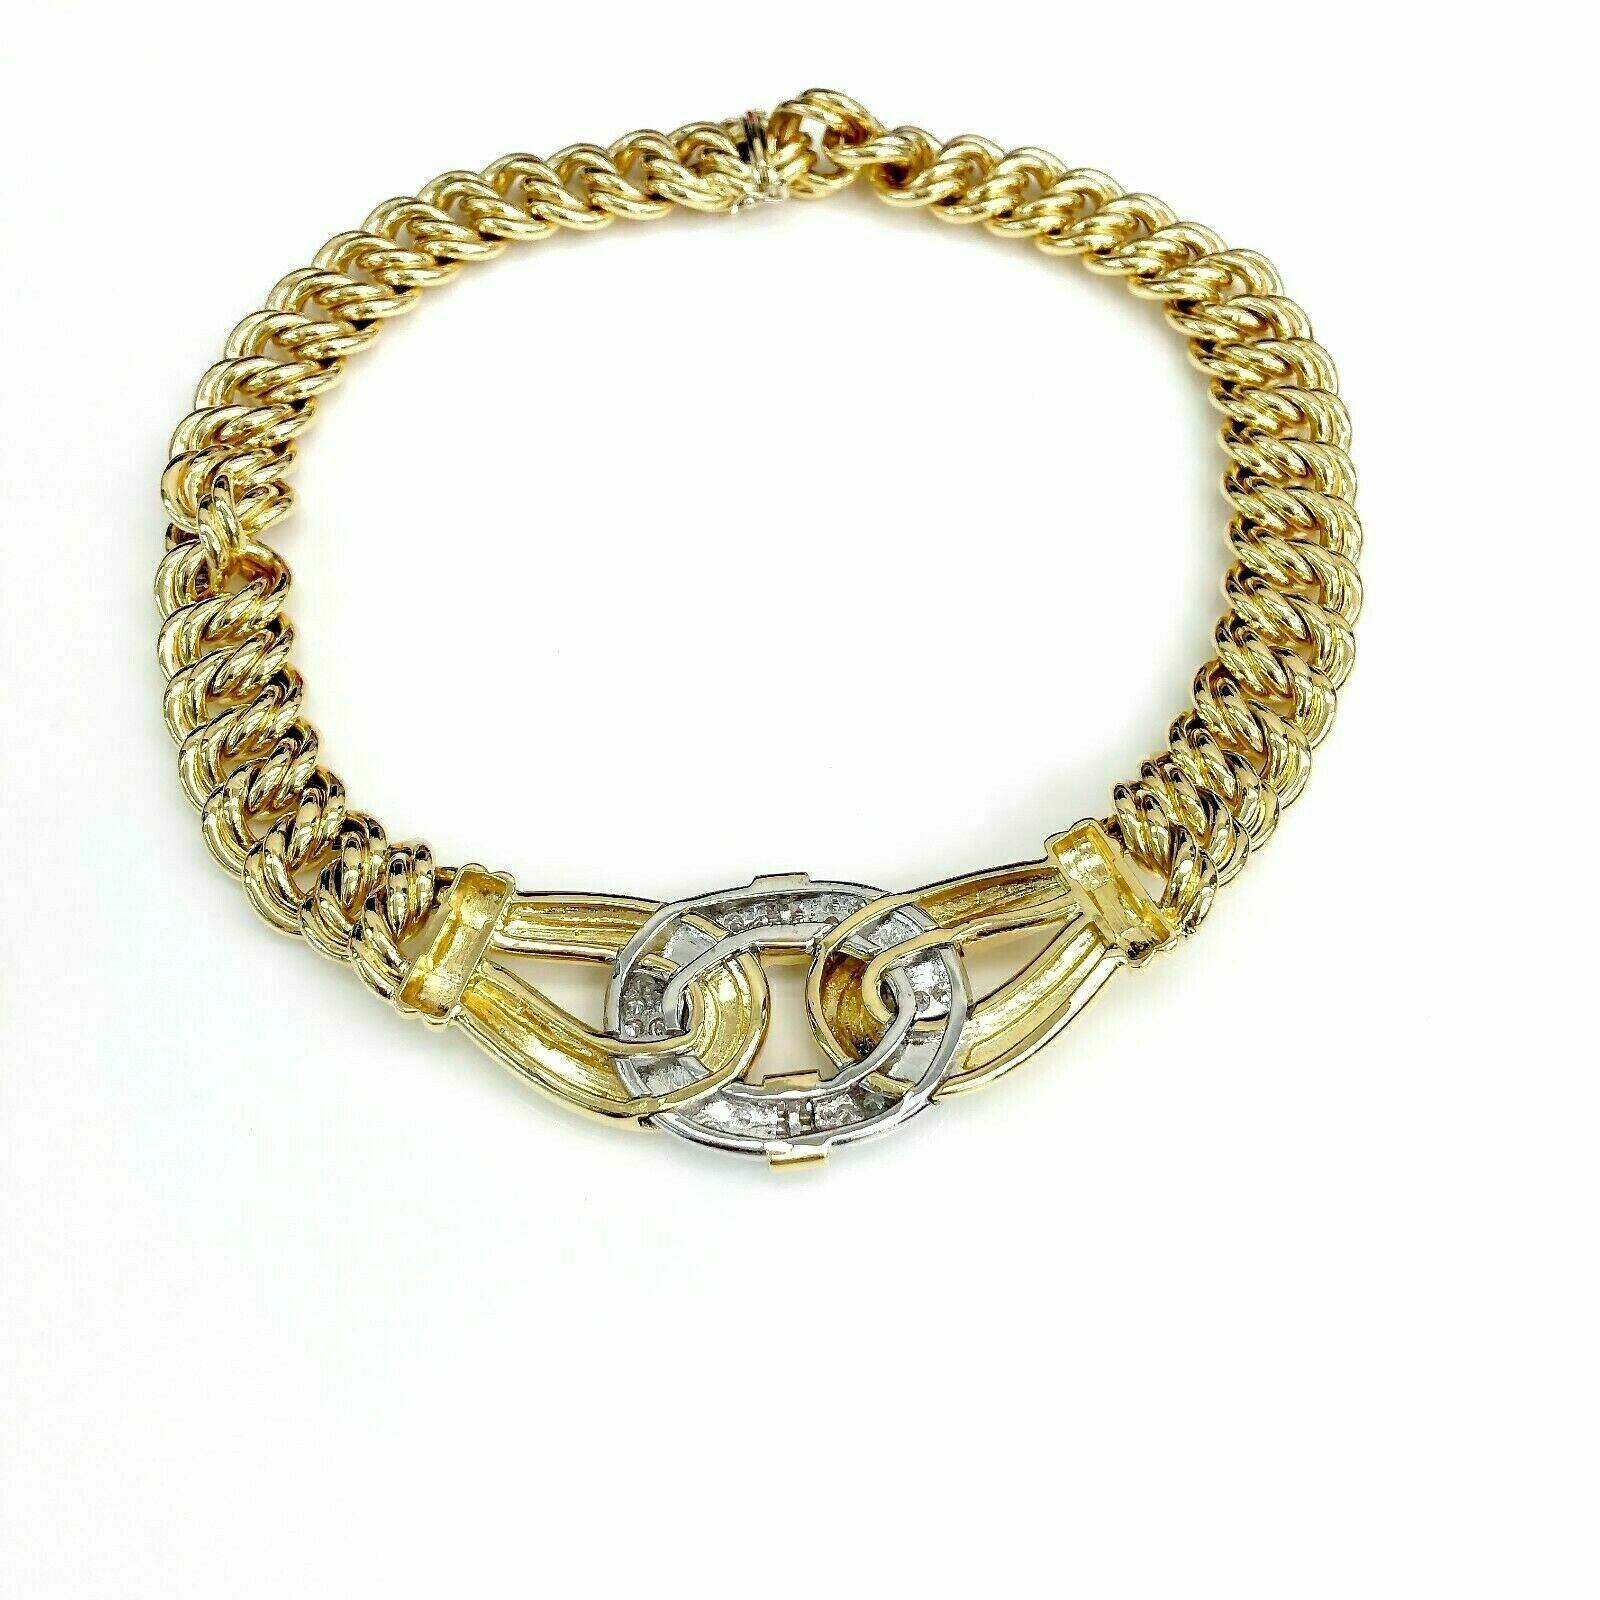 2.70 Carats t.w. F-G Color VS VVS Diamond Braided Necklace 18K Yellow Gold